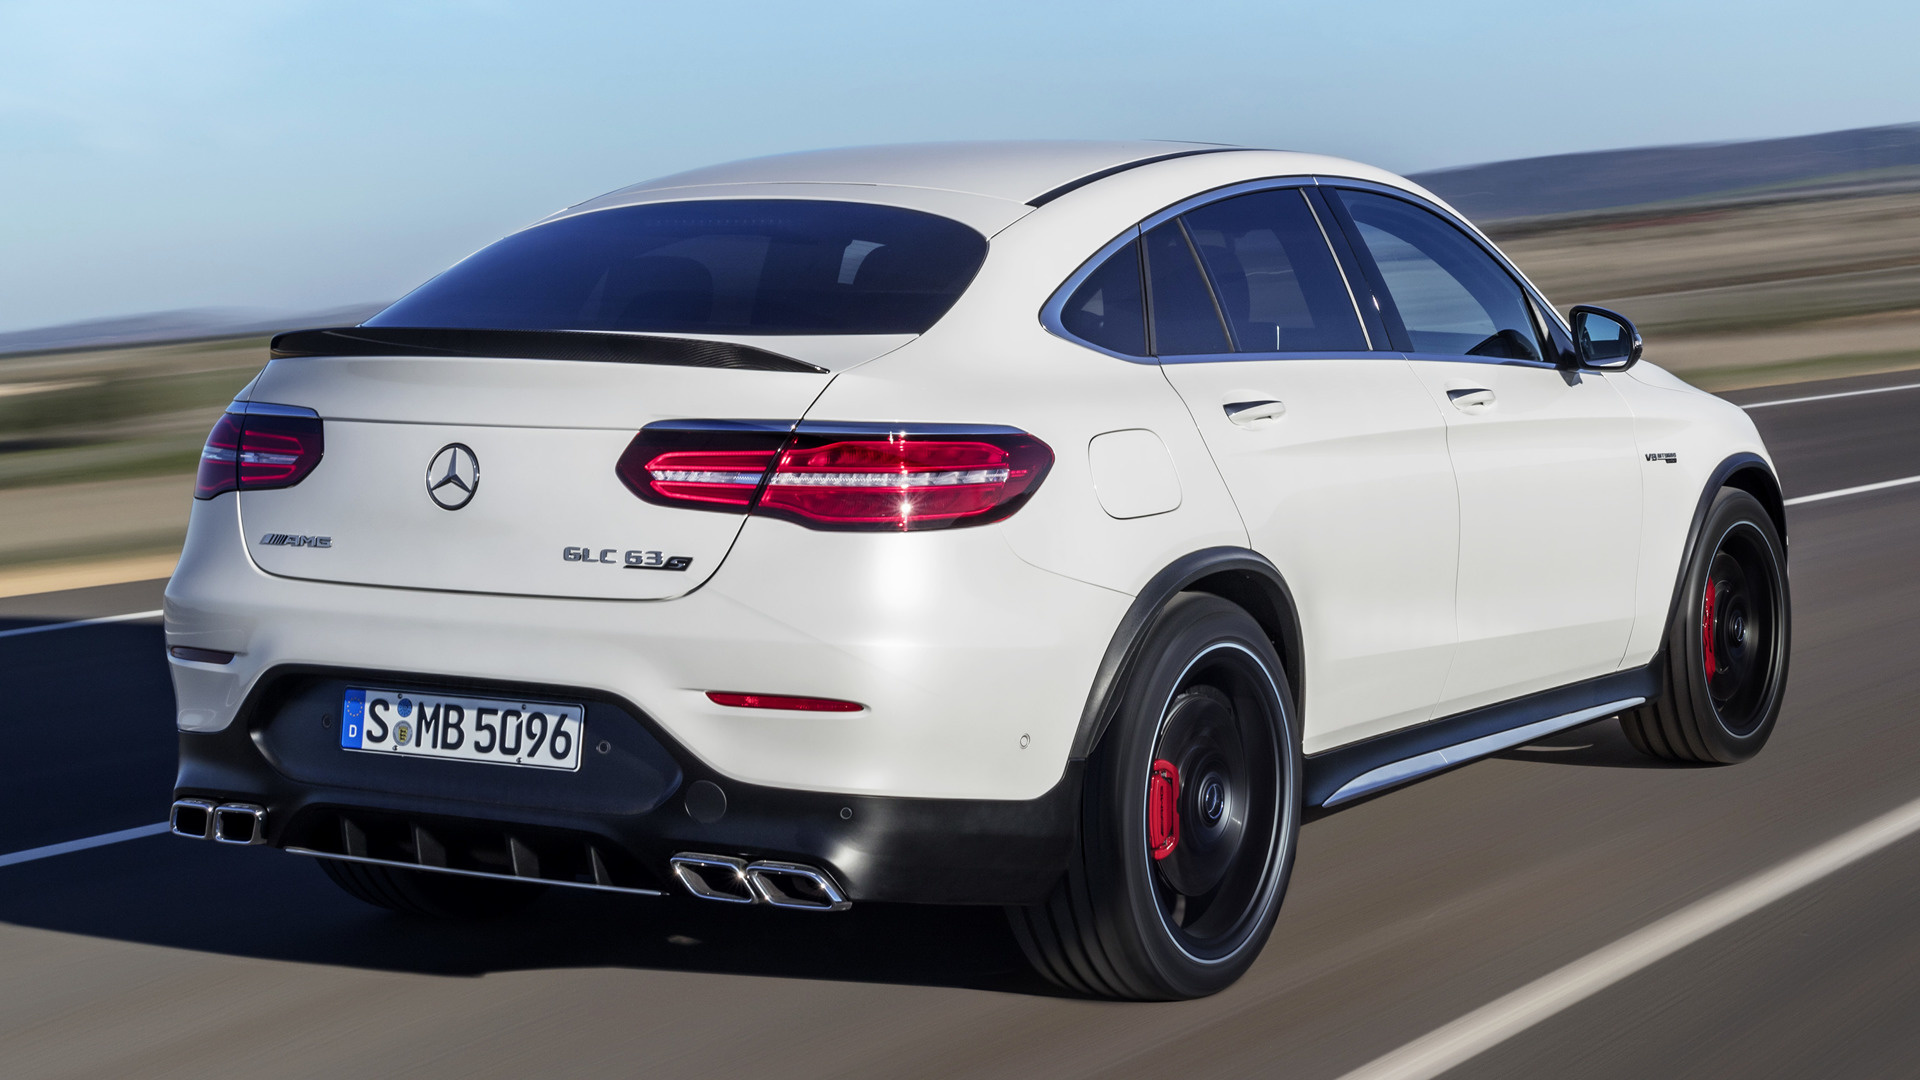 Mercedes benz glc 350 d coupe amg line 2016 wallpapers and hd images - Mercedes Amg Glc 63 S Coupe 2017 Wallpapers And Hd